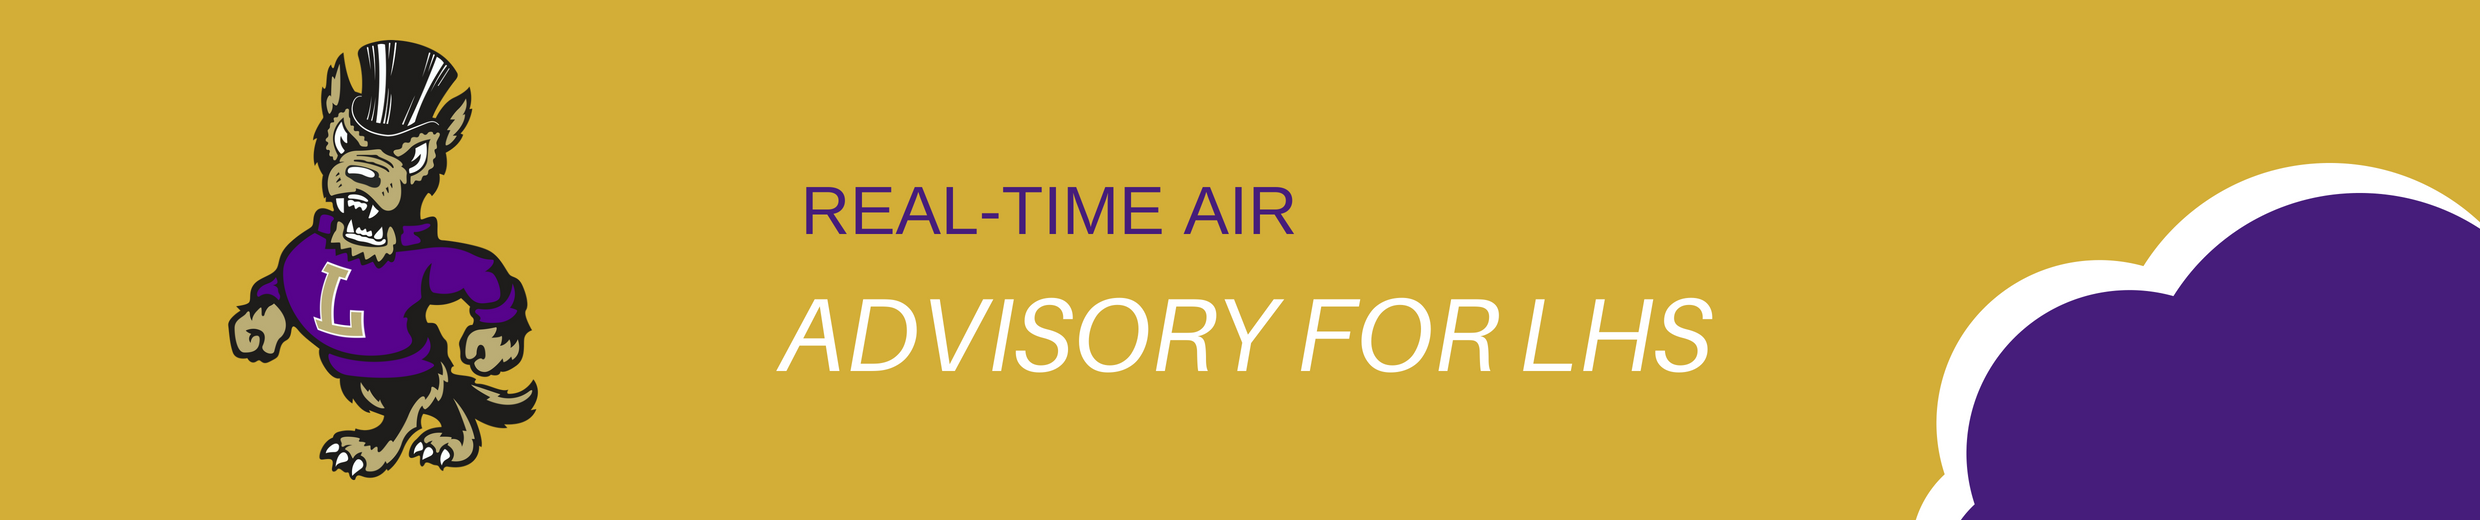 Real Time Air Advisory for LHS